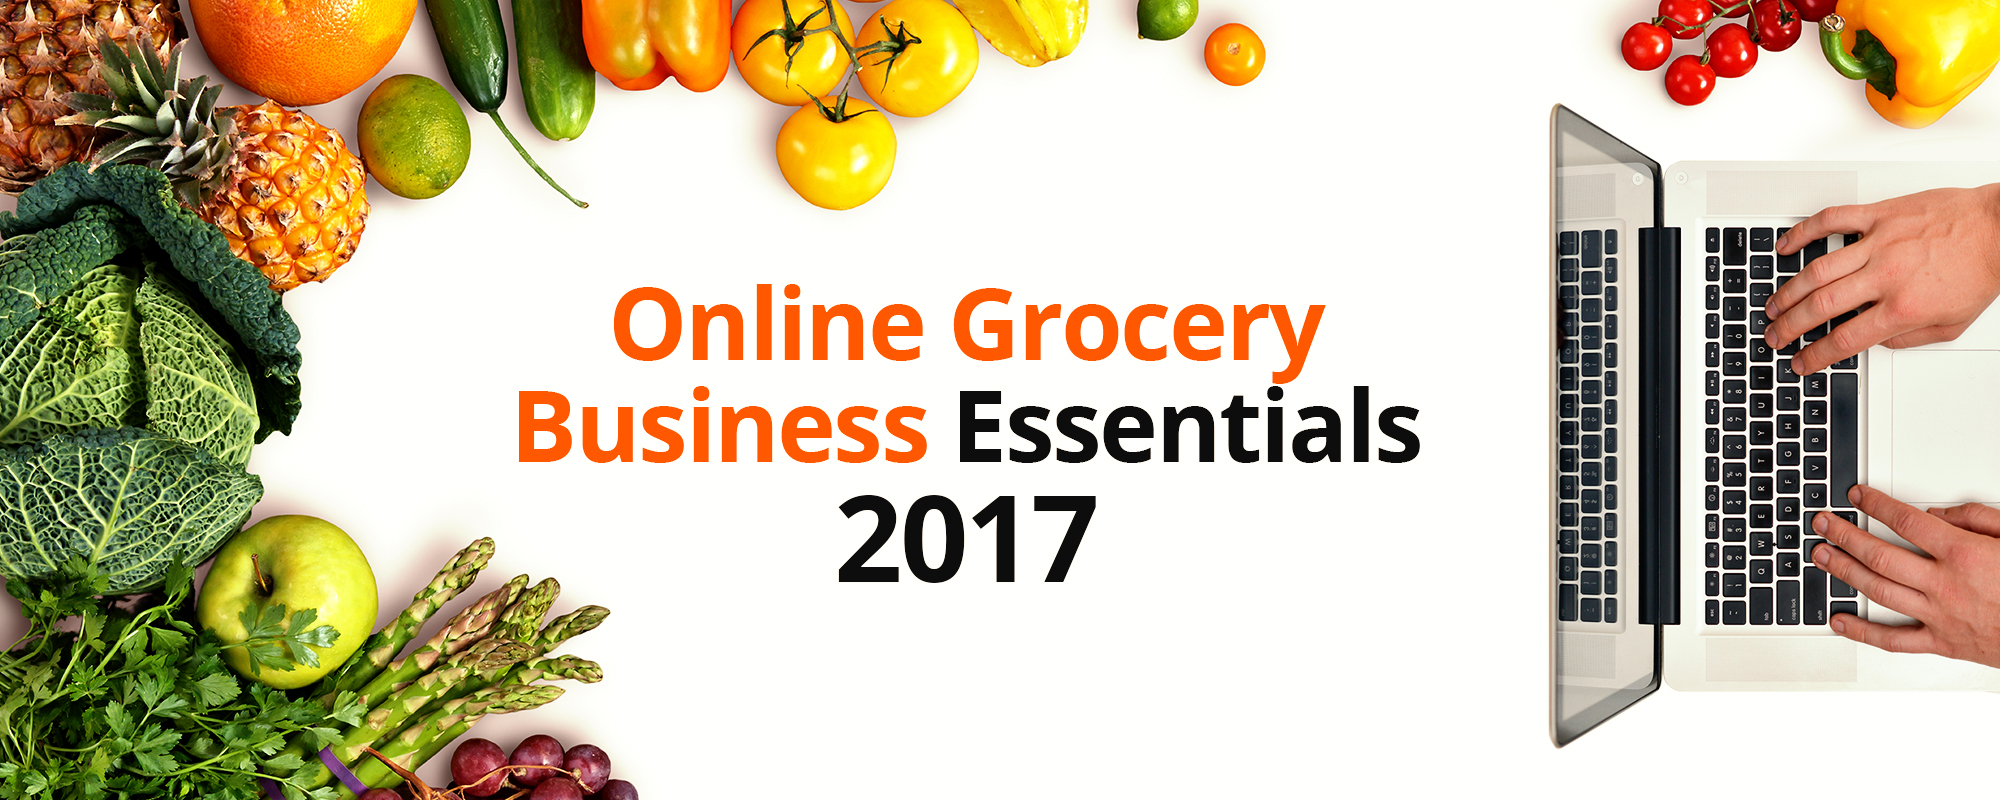 Setting up Online Grocery Business in 2017? Here Is What You Need to Know